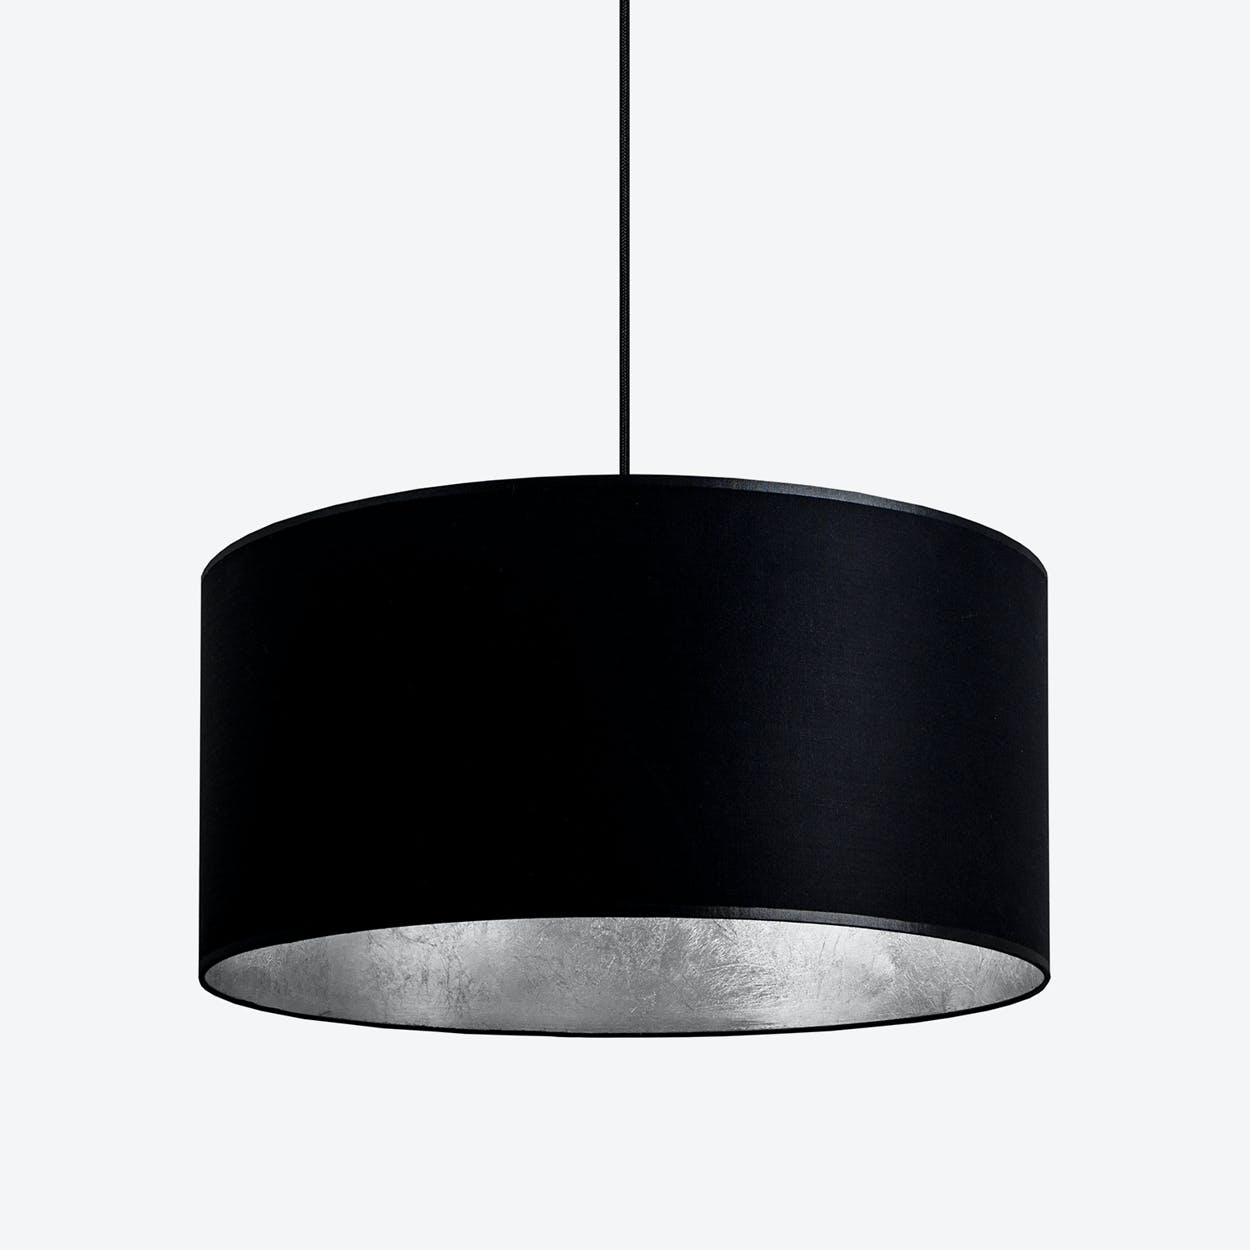 MIKA XL Single Pendant Light in Black with Silver Leaf